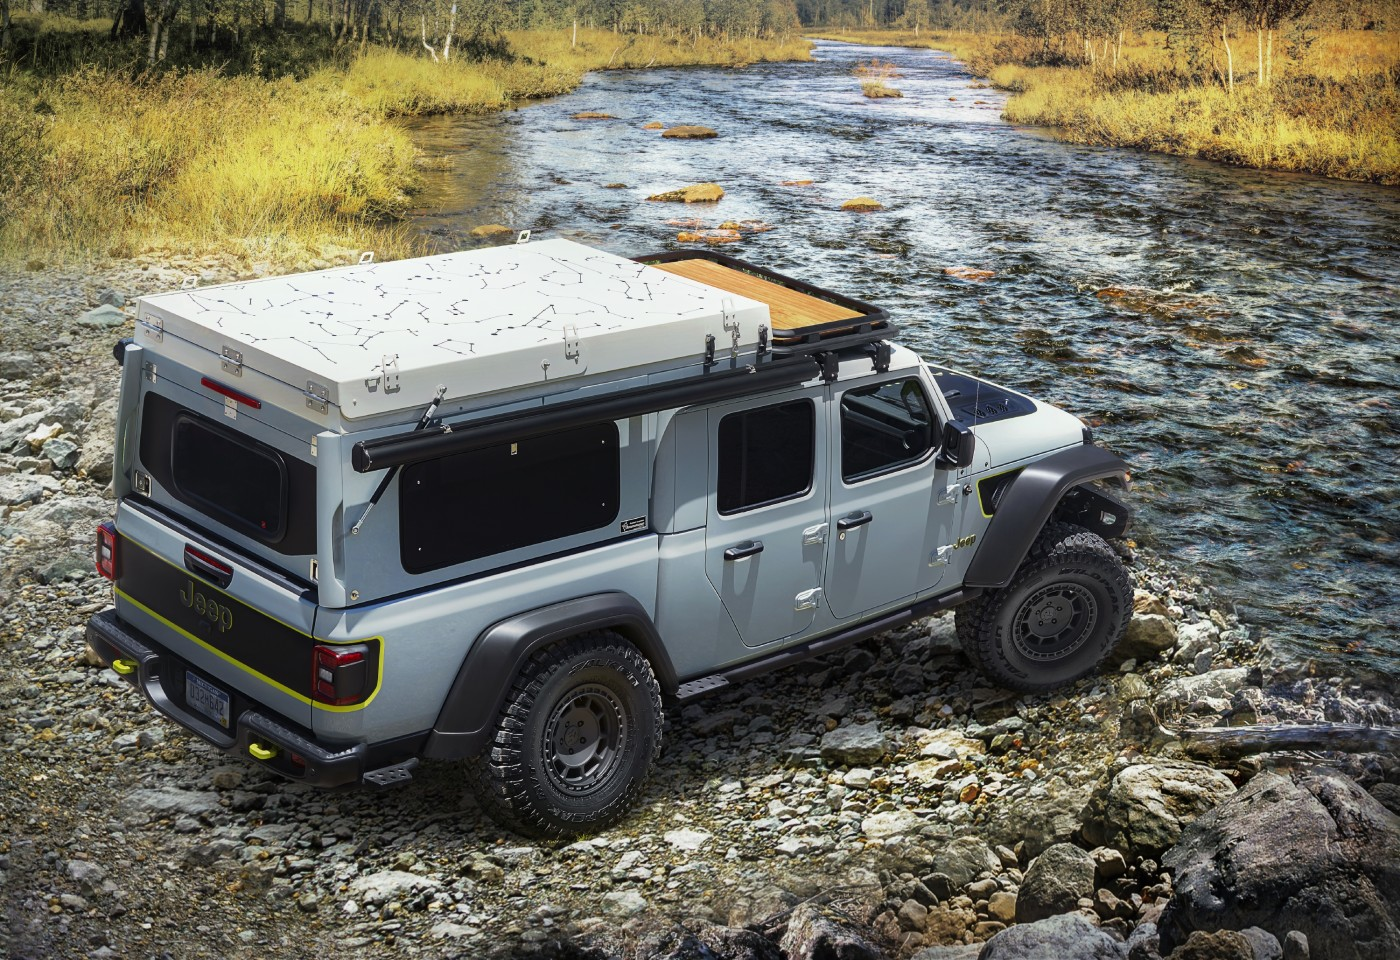 With its windows, body color paint and rooftop graphics, the AT Overland Habitat is a little comfier and more stylish on the Jeep Gladiator Farout than more basic iterations we've seen previously